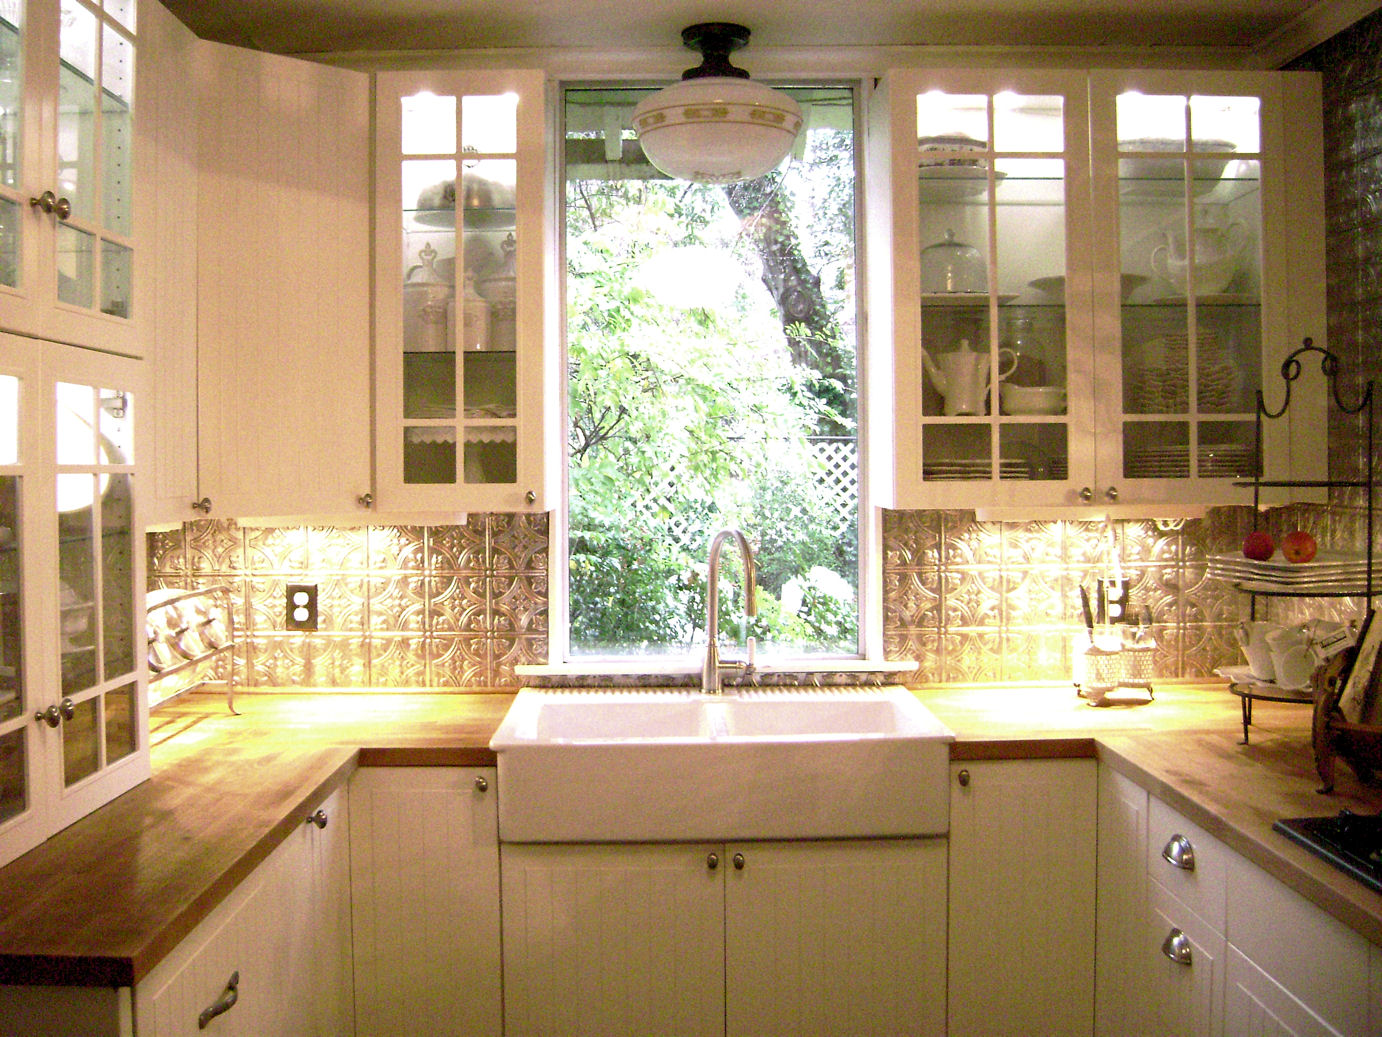 LaurieAnna's Vintage Home: Small Kitchen ~ Big Surprises!!